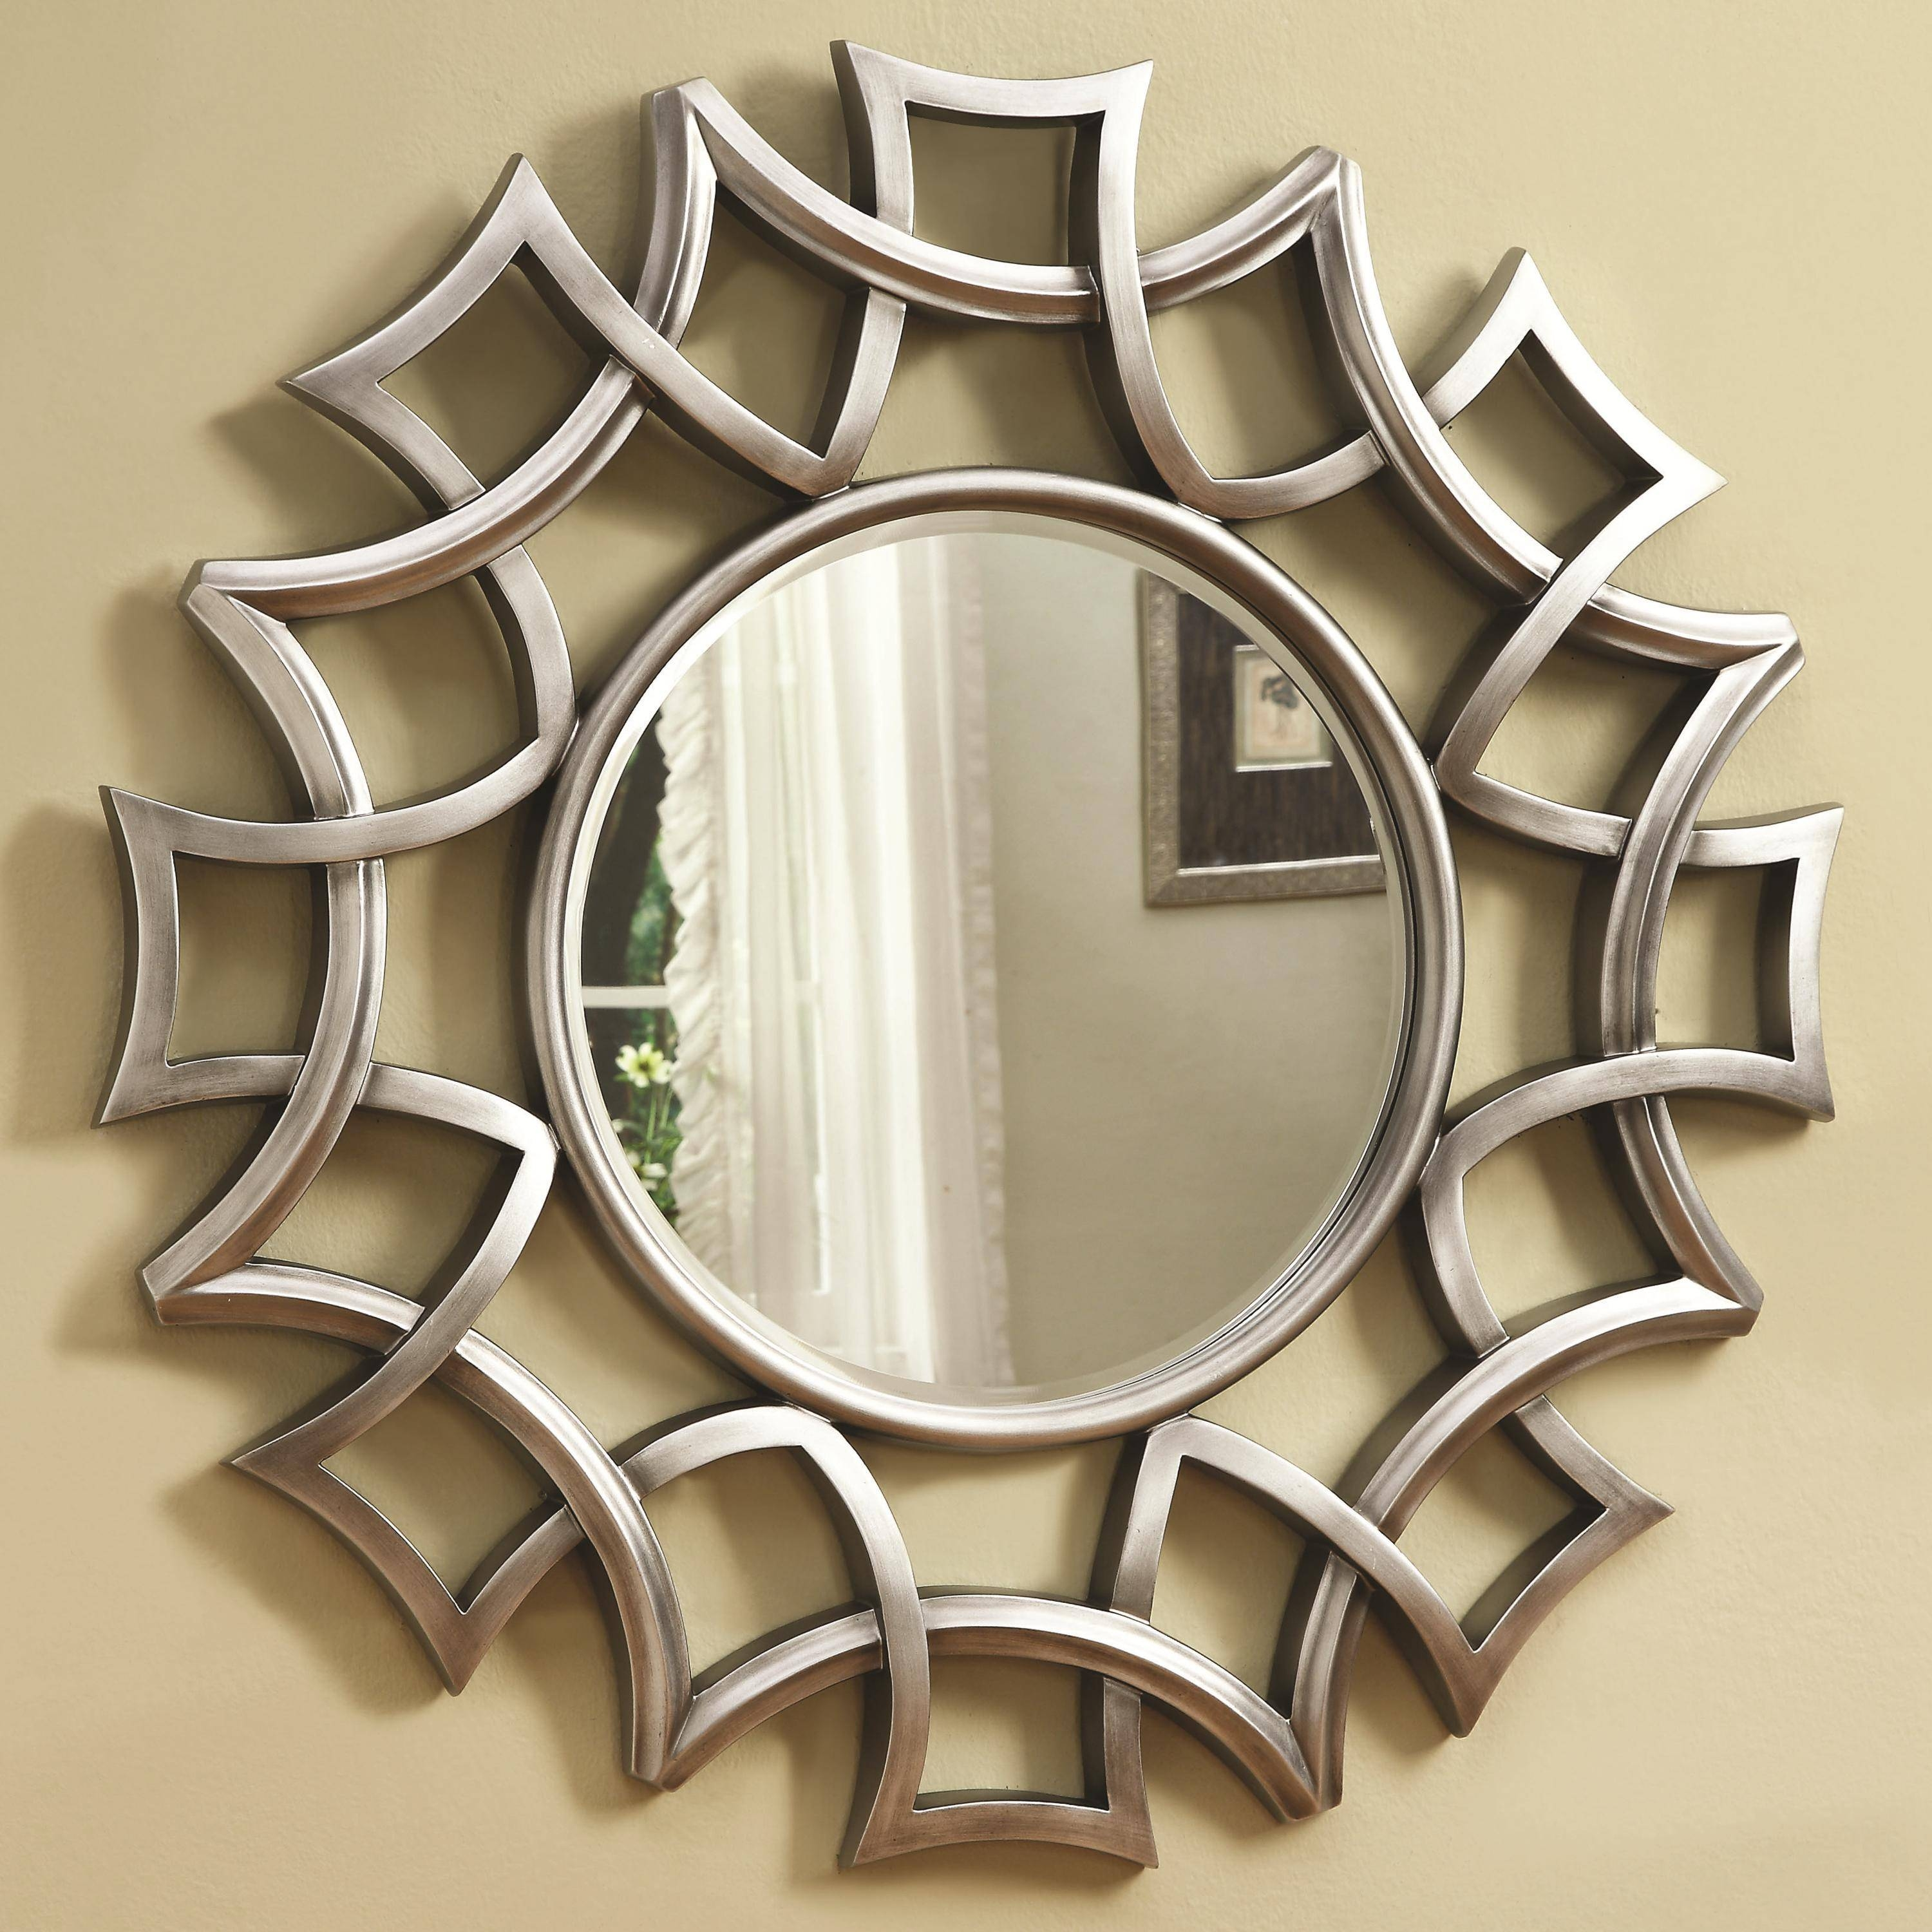 Accent Mirror, Ashley Signature Design Accent Mirrors Lucia within Ornate Round Mirrors (Image 6 of 25)